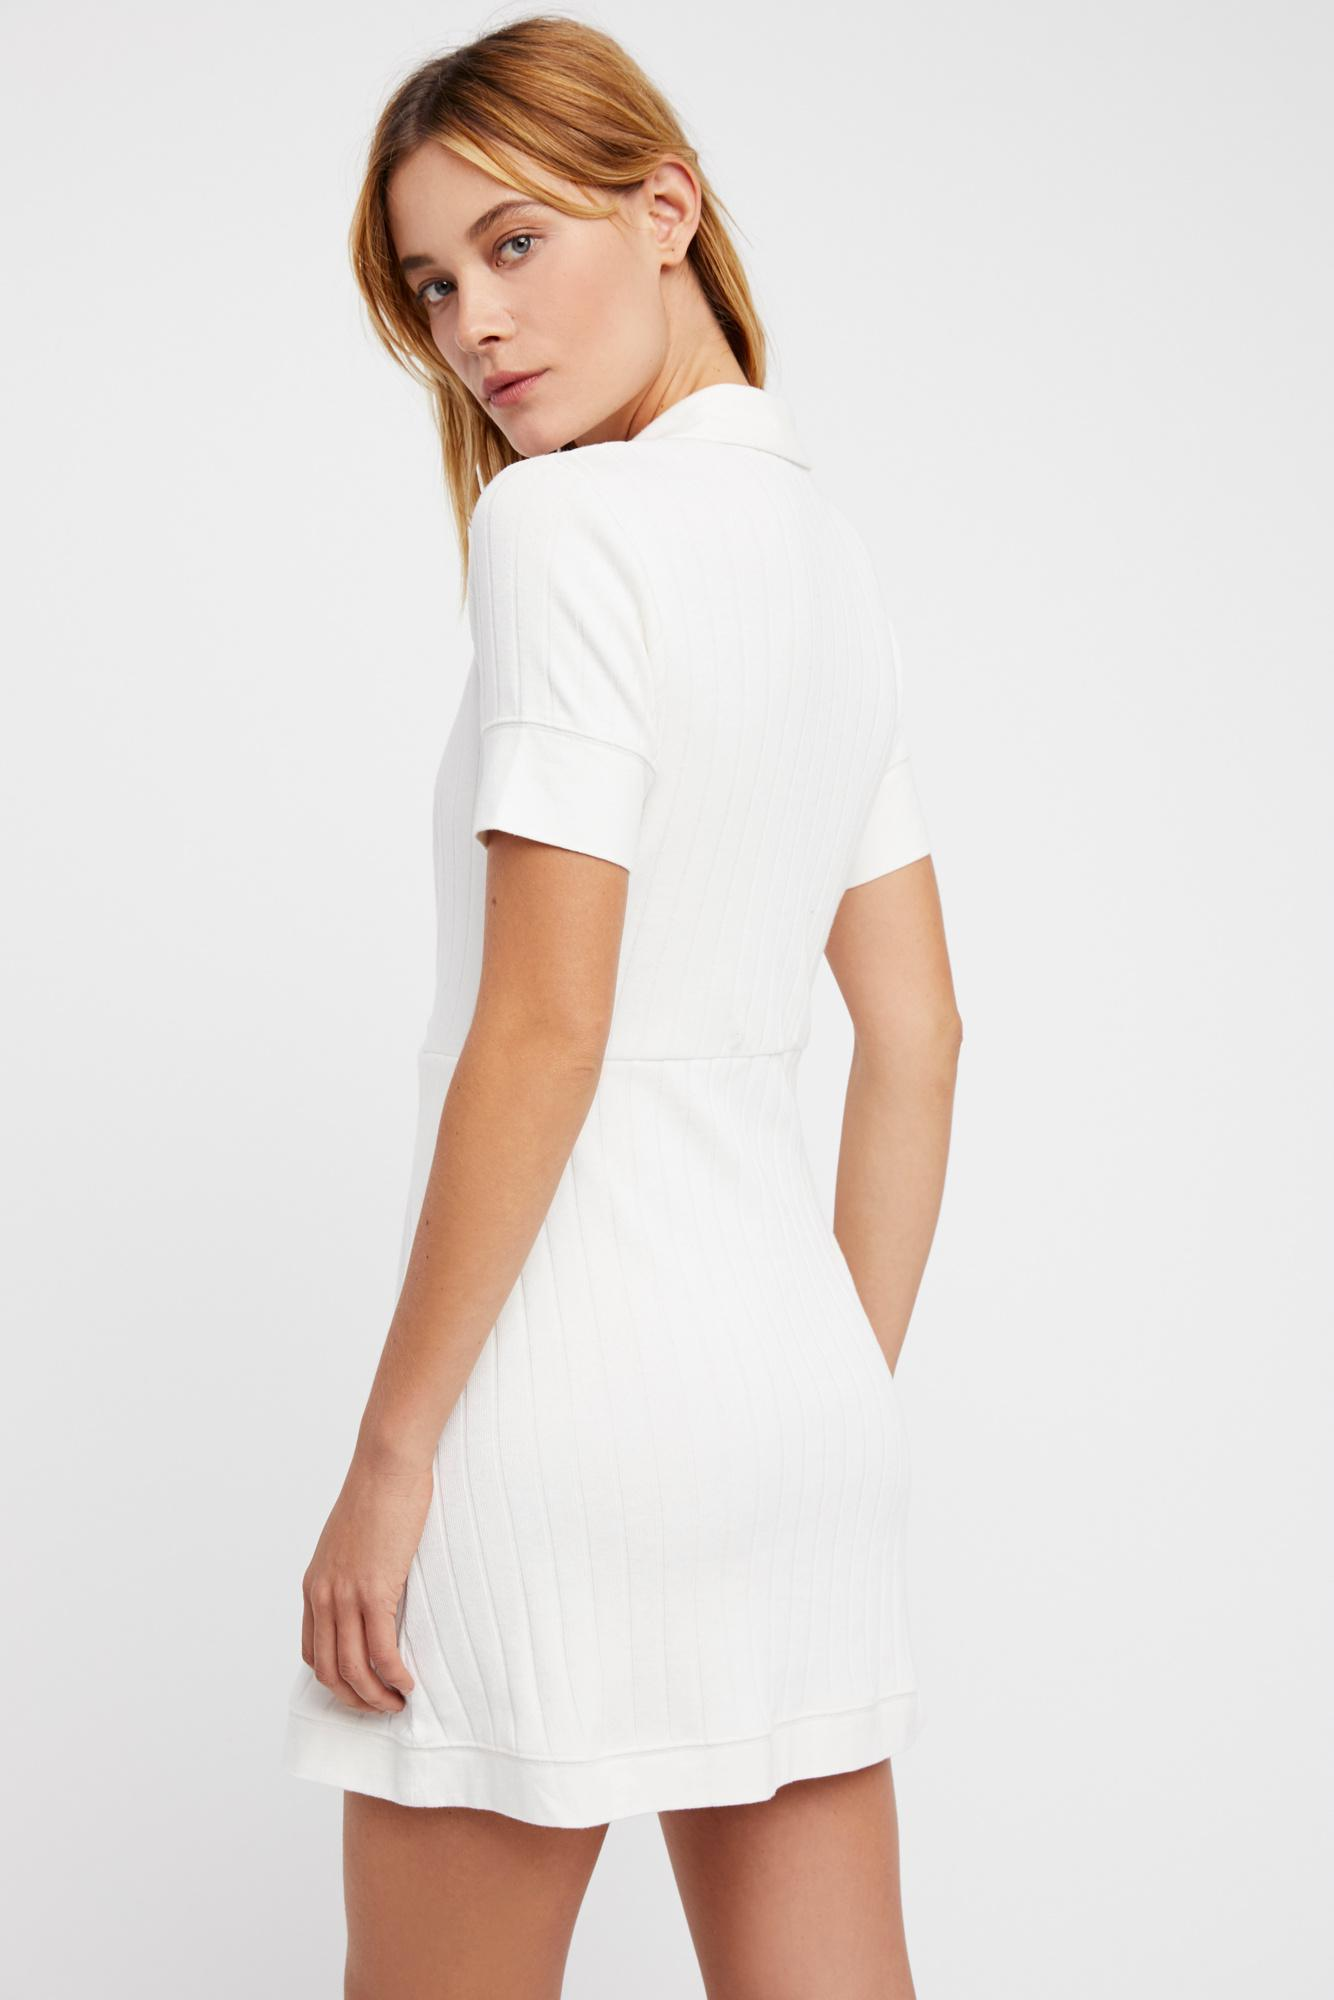 f3936d0b6a Free People - White New Afternoon Mini Dress By Fp Beach - Lyst. View  fullscreen